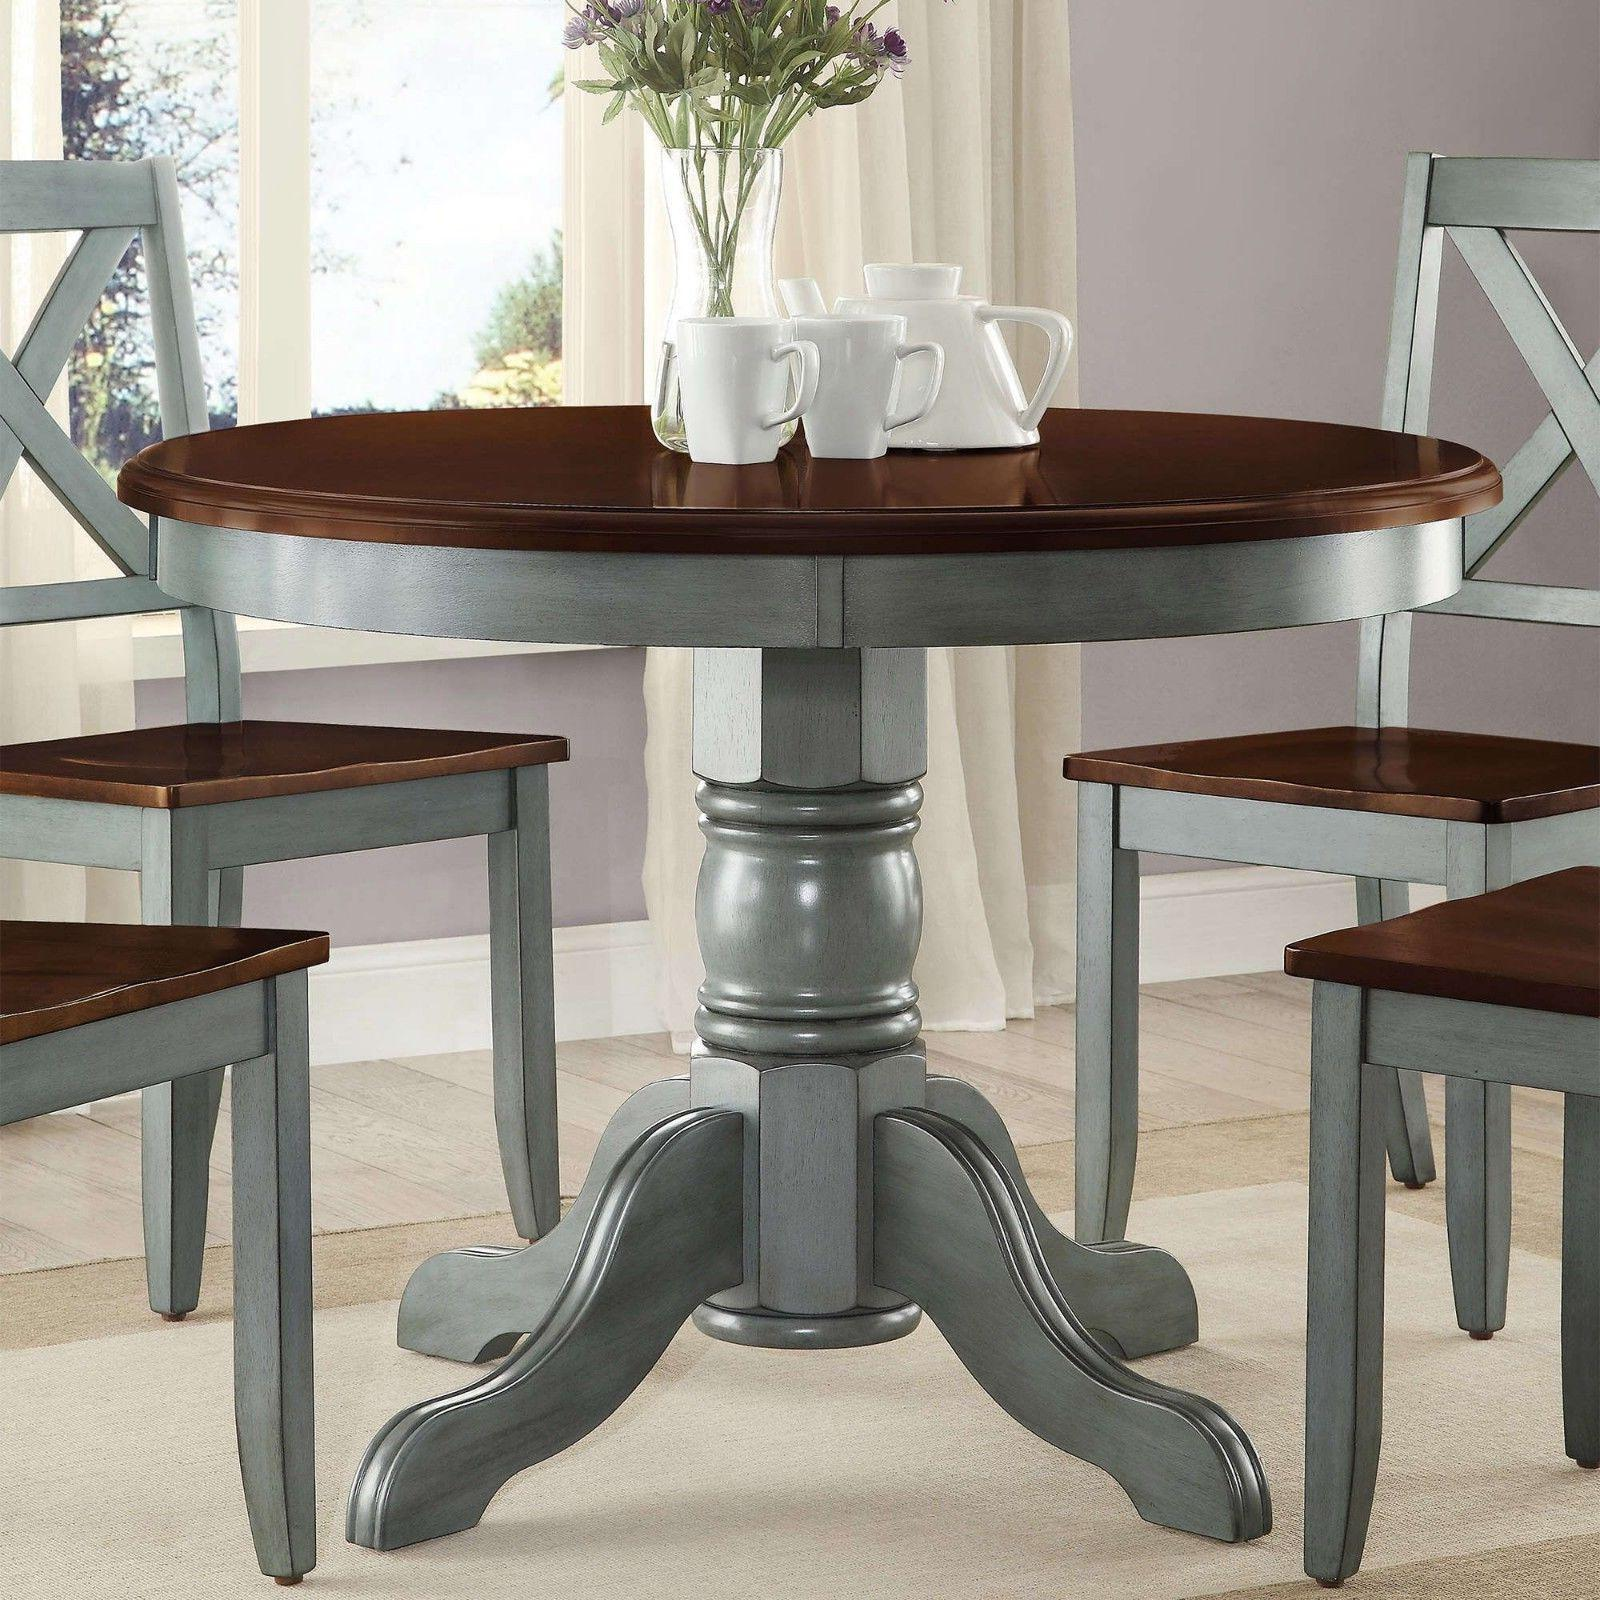 Farmhouse Dining Table Set Rustic Round Kitchen Tables